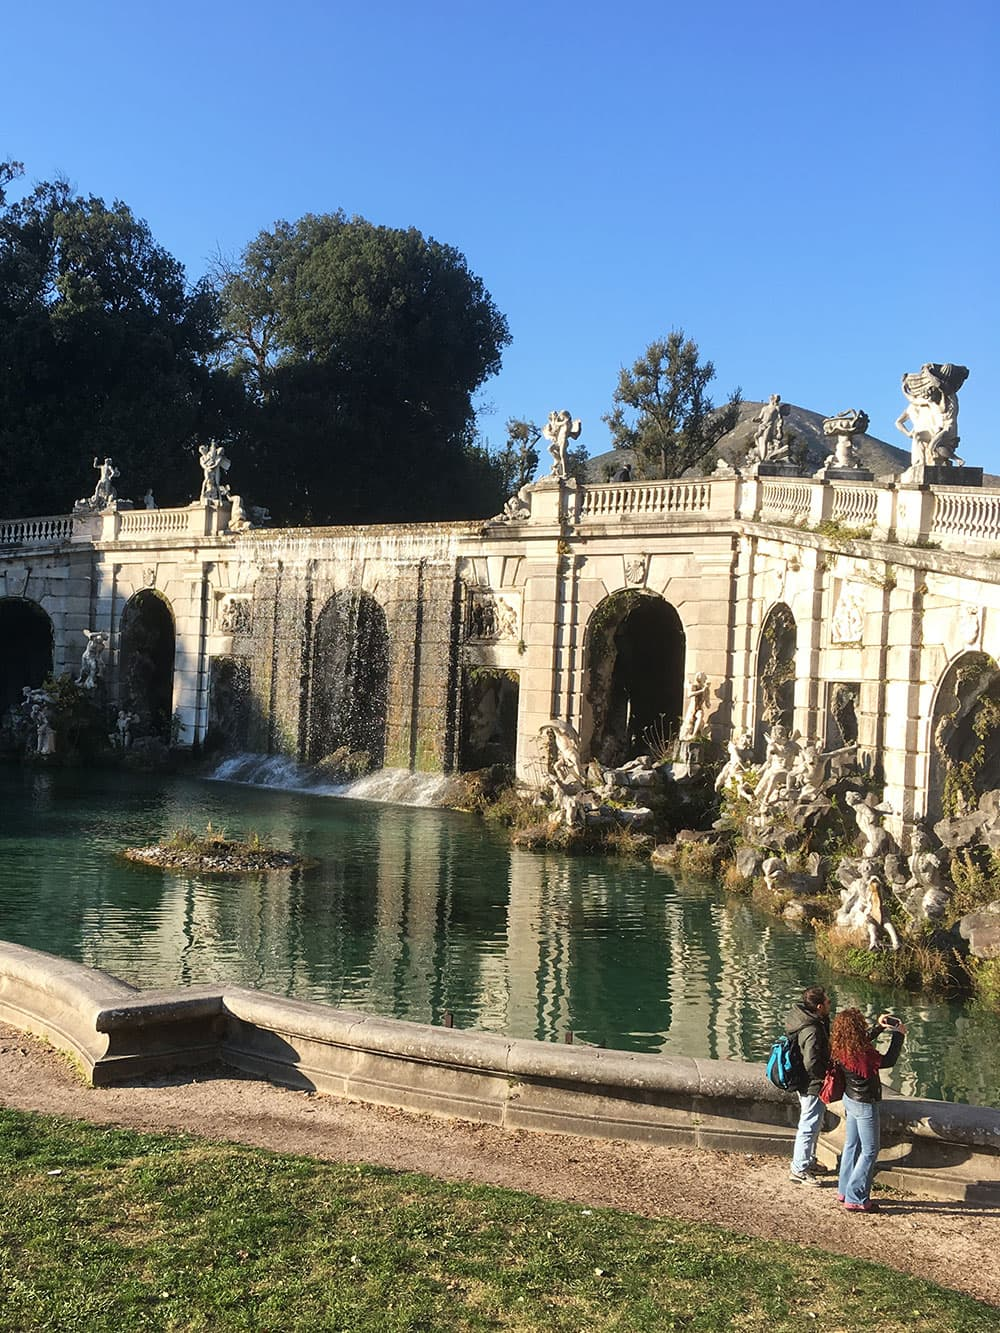 One of the many fountains in the garden at the Royal Palace of Caserta